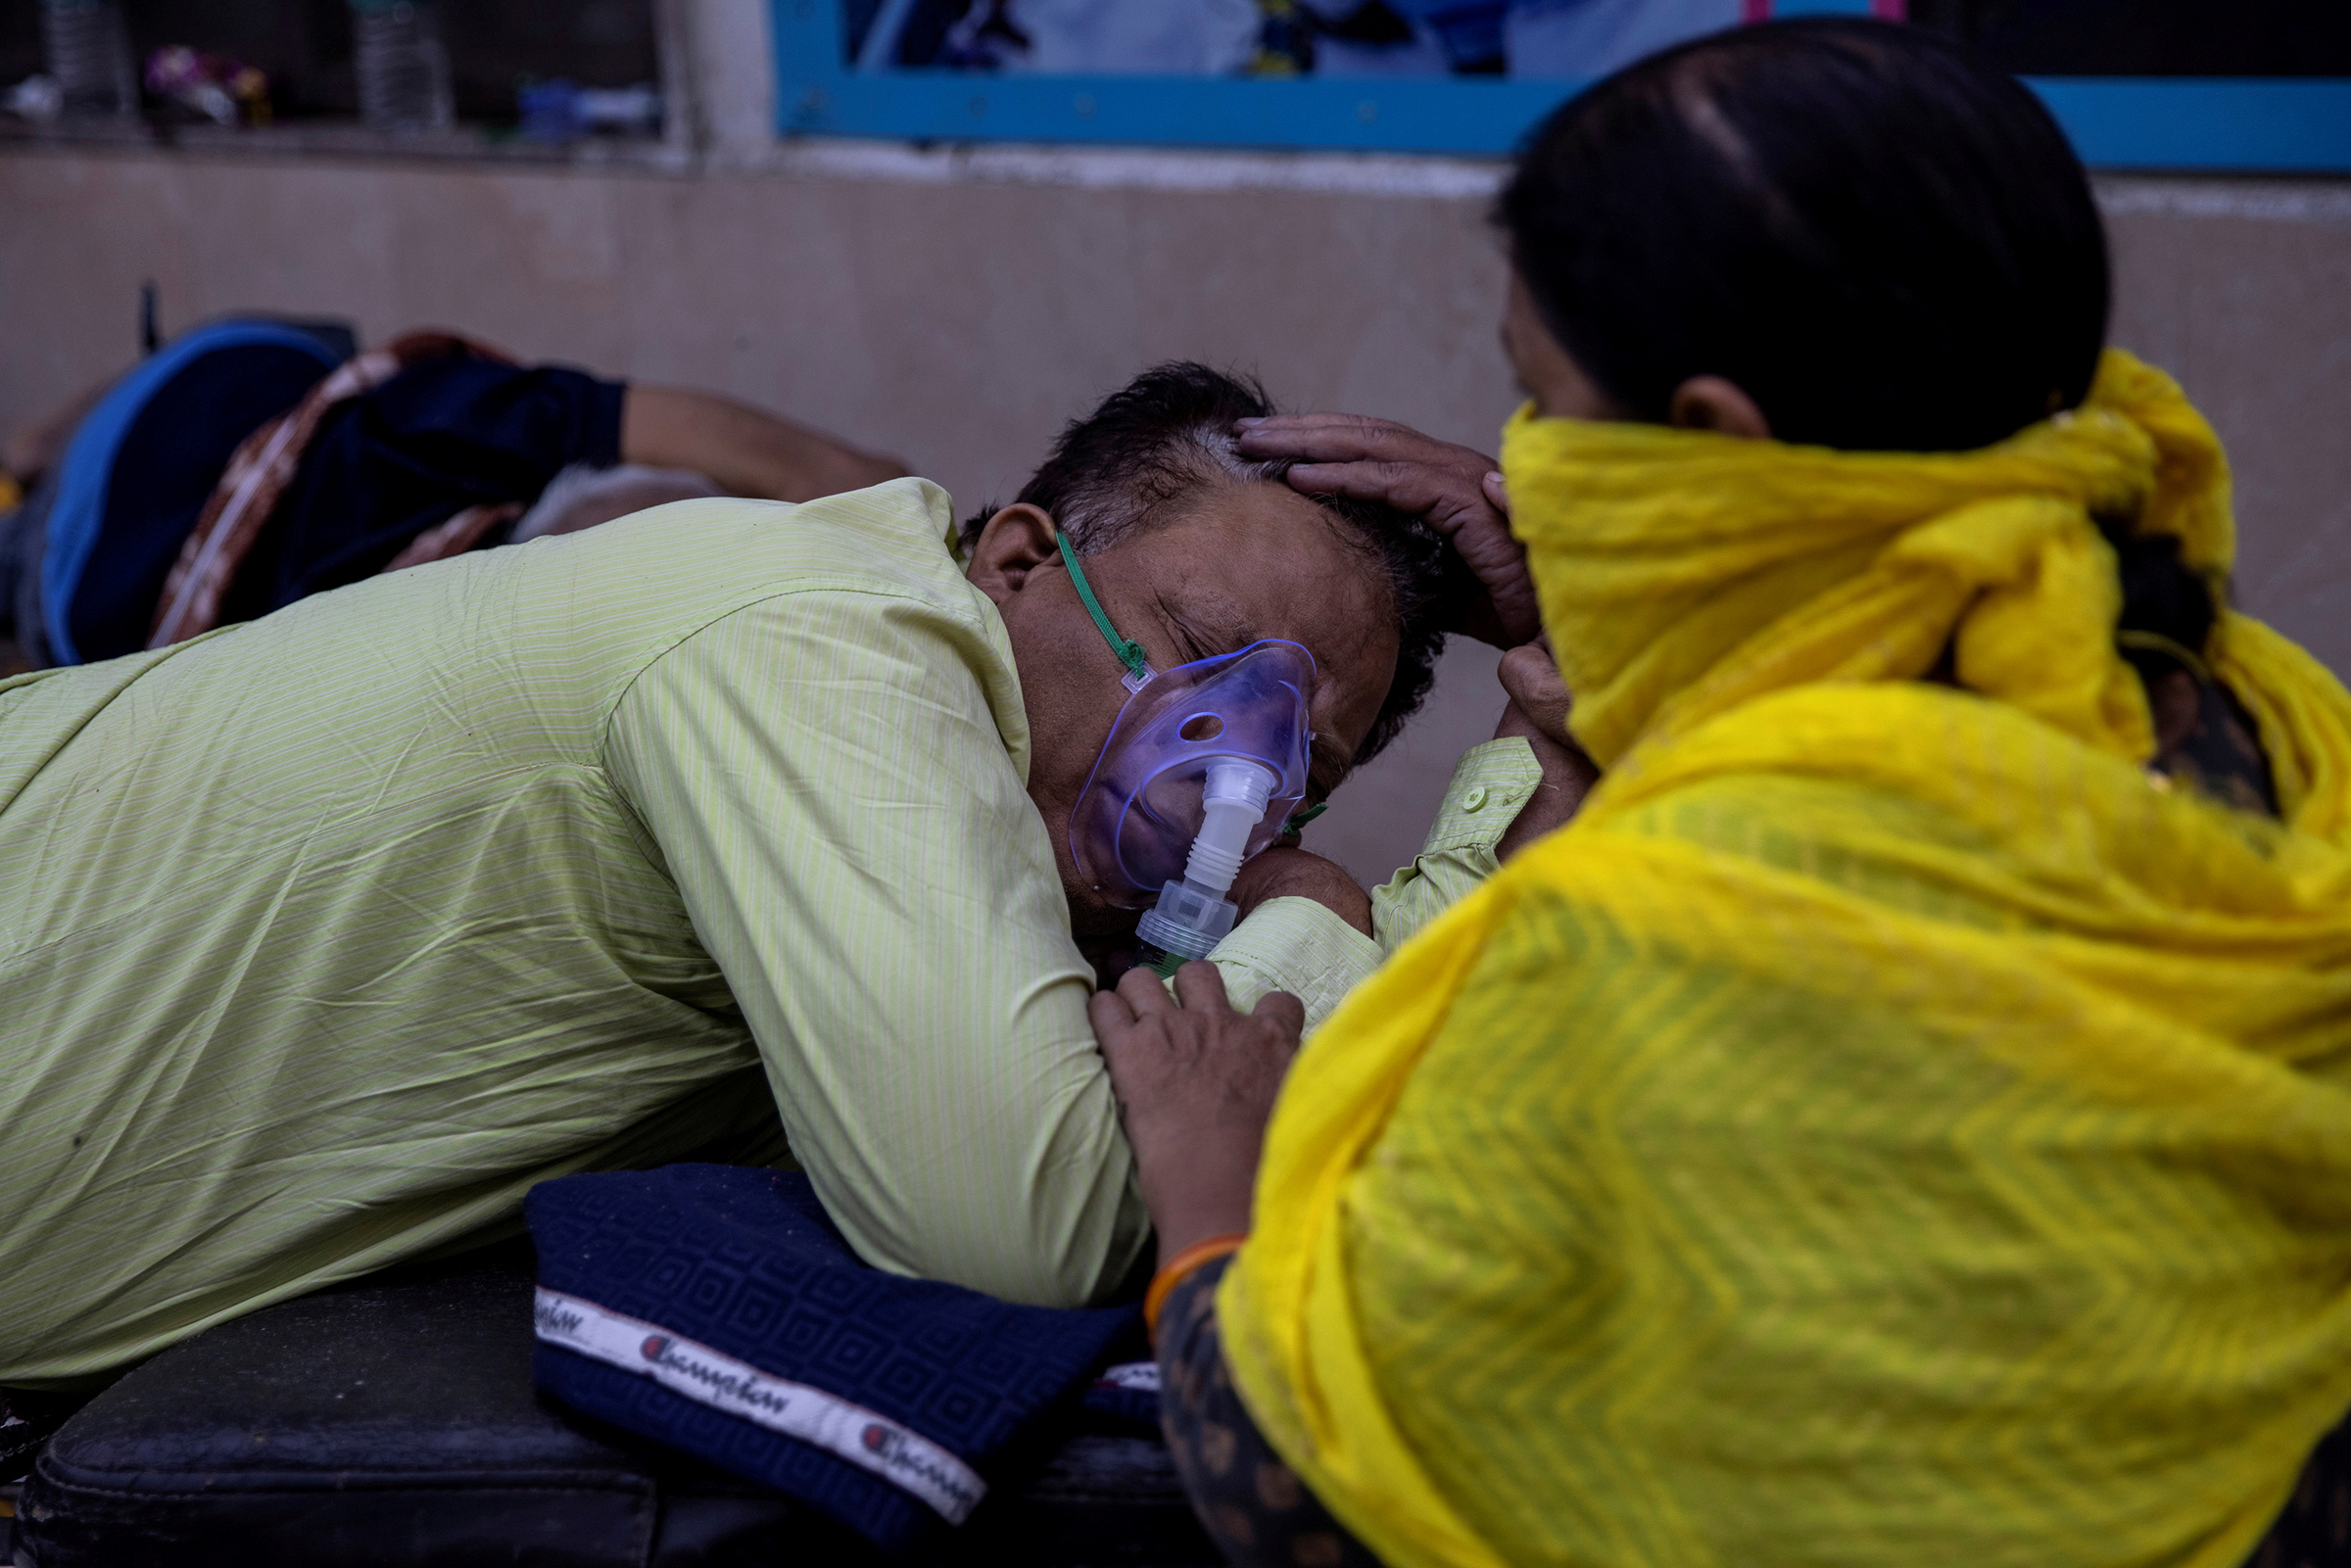 A woman takes care of her husband, who is suffering from COVID-19, as he waits to be admitted outside the casualty ward at Guru Teg Bahadur hospital in New Delhi on April 23, 2021.